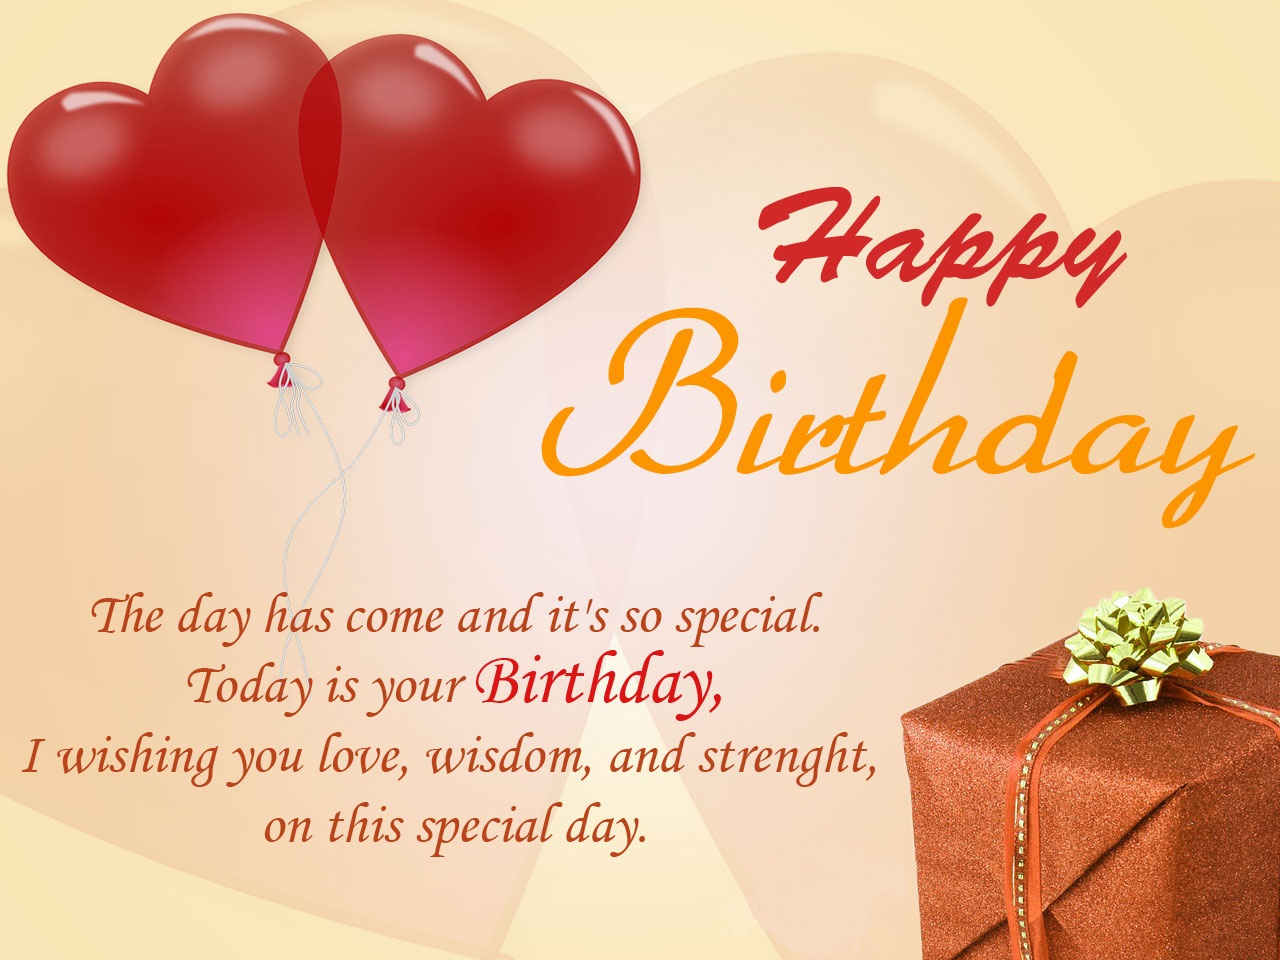 best birthday wish message for husband ; 8b40da84327cf928fb6032af0b3329fb